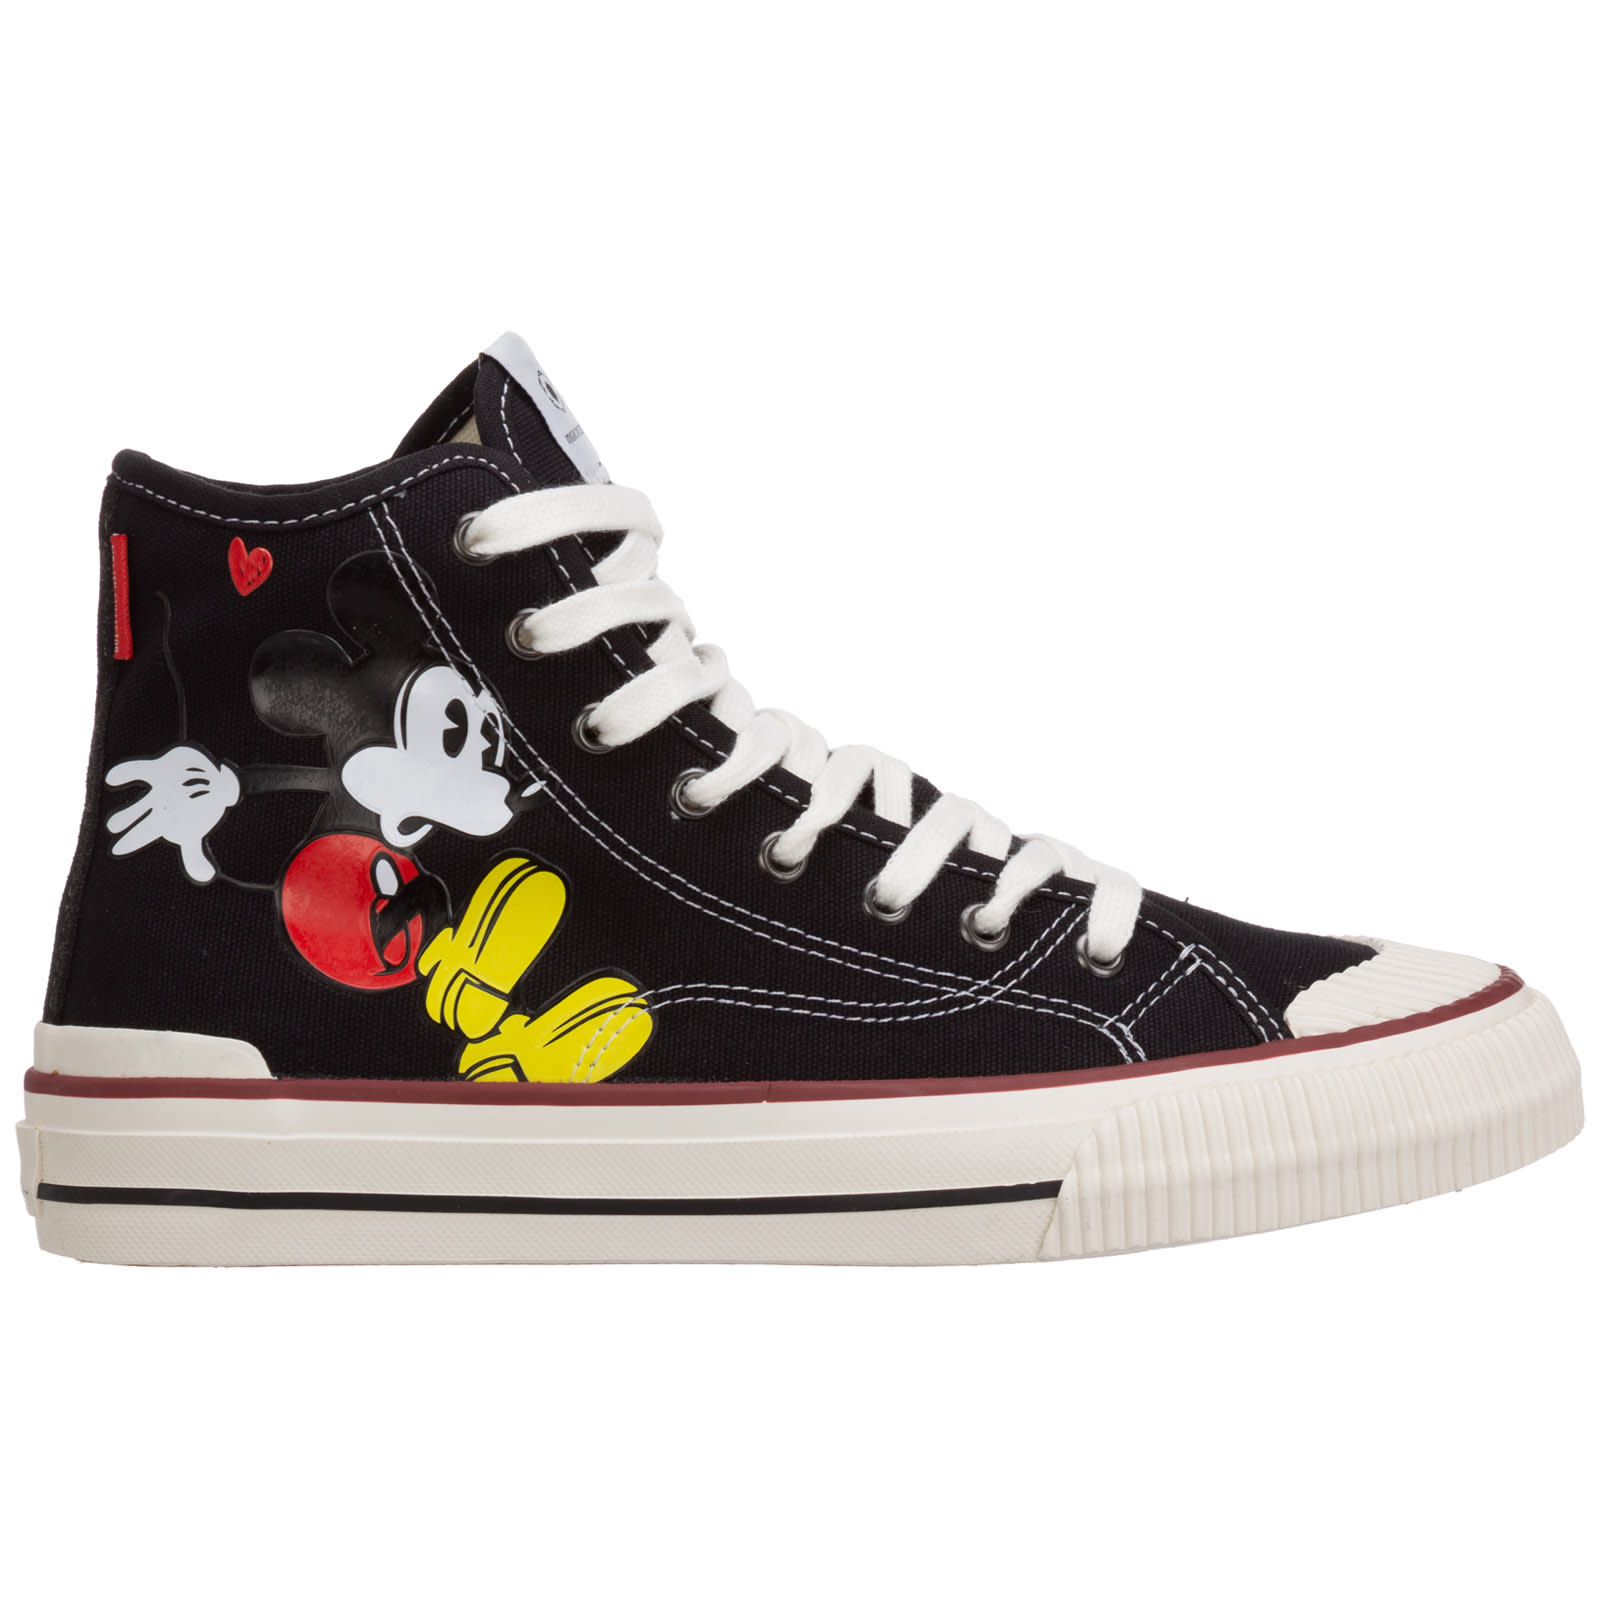 M.o.a. Master Of Arts High tops MOA MASTER OF ARTS DISNEY MICKEY MOUSE HIGH-TOP SNEAKERS